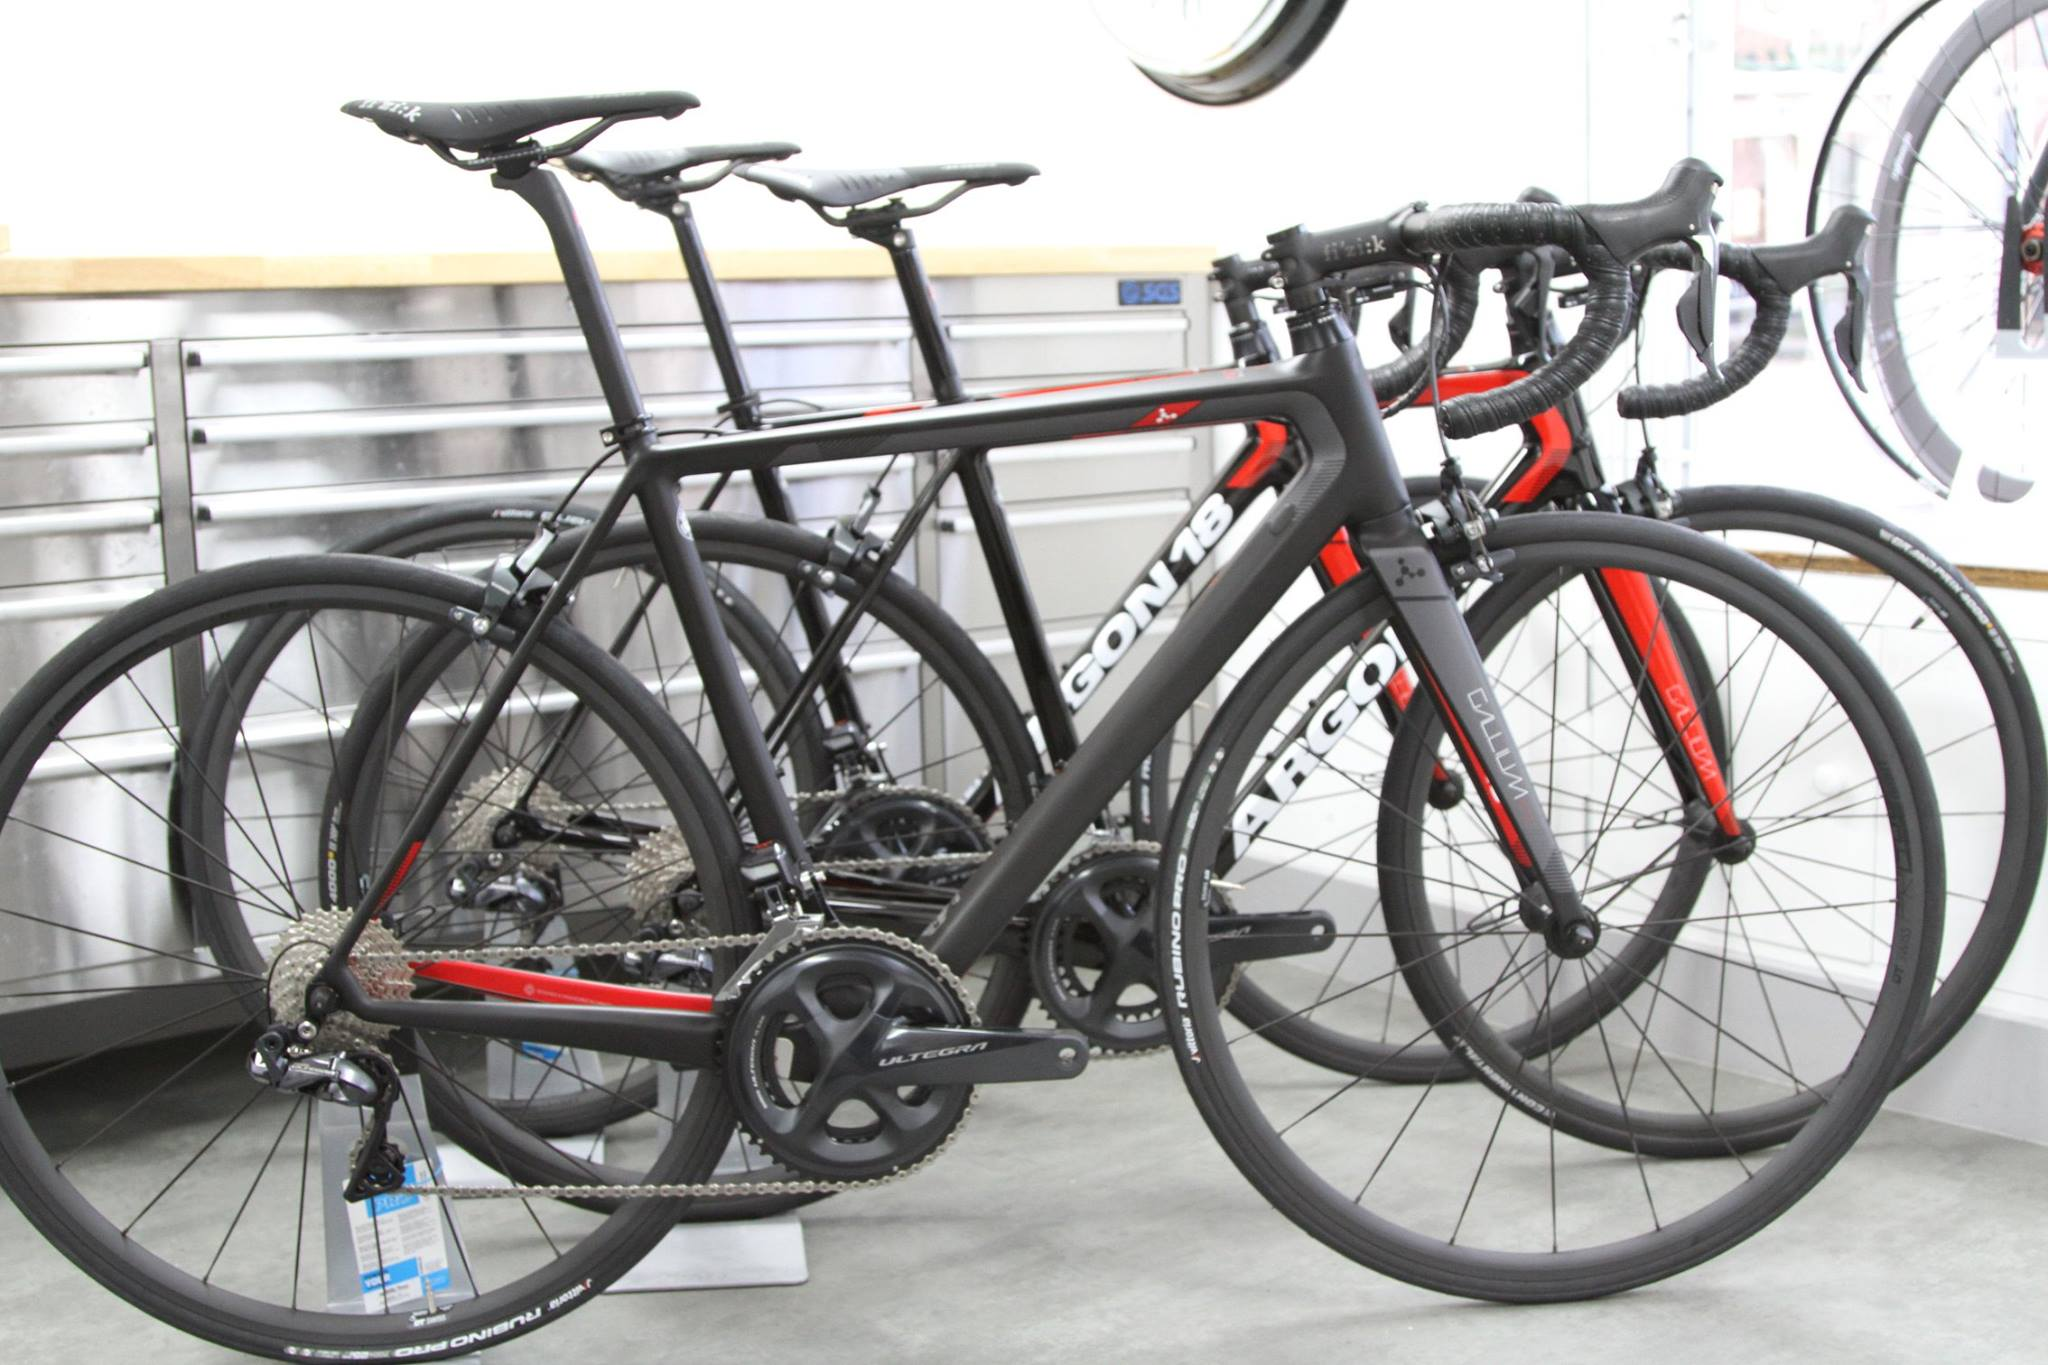 ARGON18   At Service de Velo we have a long standing relationship with Argon 18. We can now offer our collection range of bikes designed with the balance of value and design all beautifully built, sized and fitted for you in store.